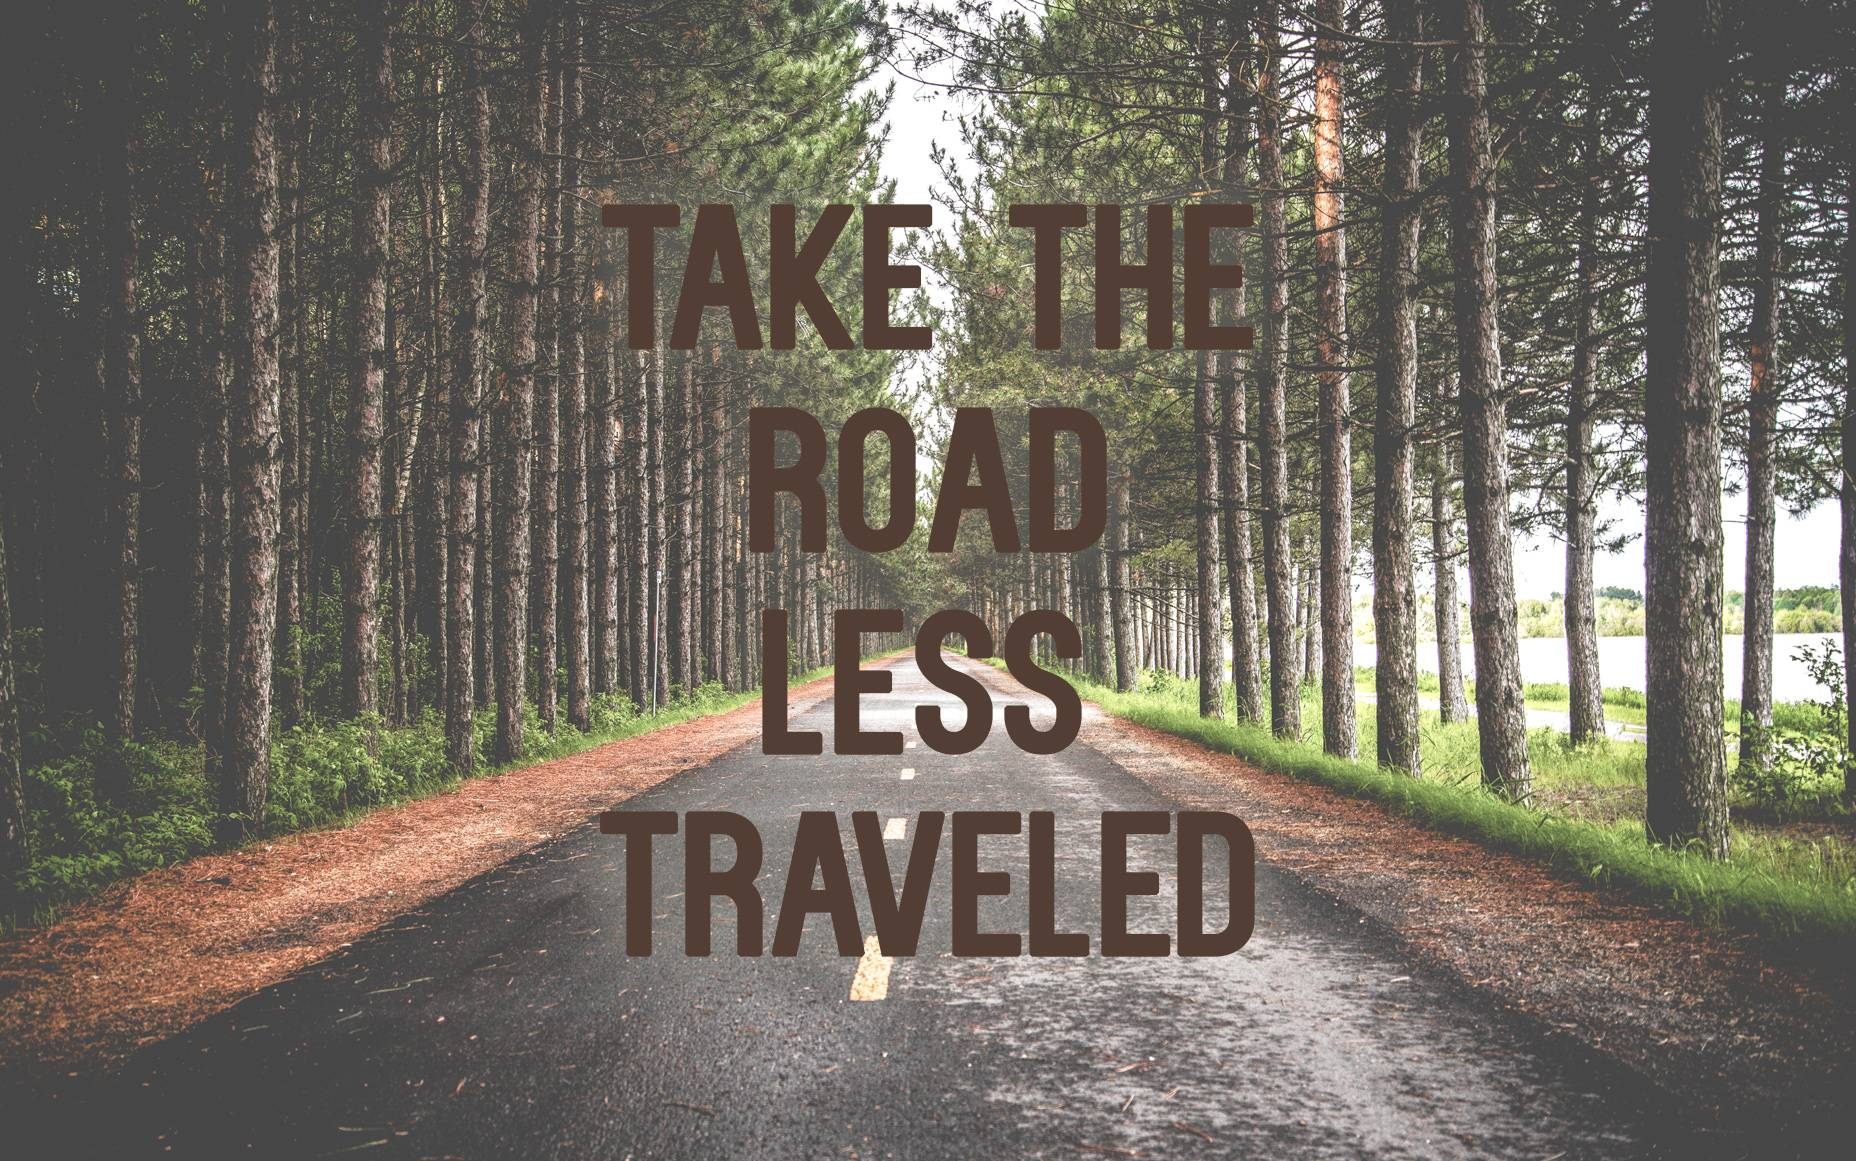 Road Less Traveled Wallpapers - Wallpaper Cave